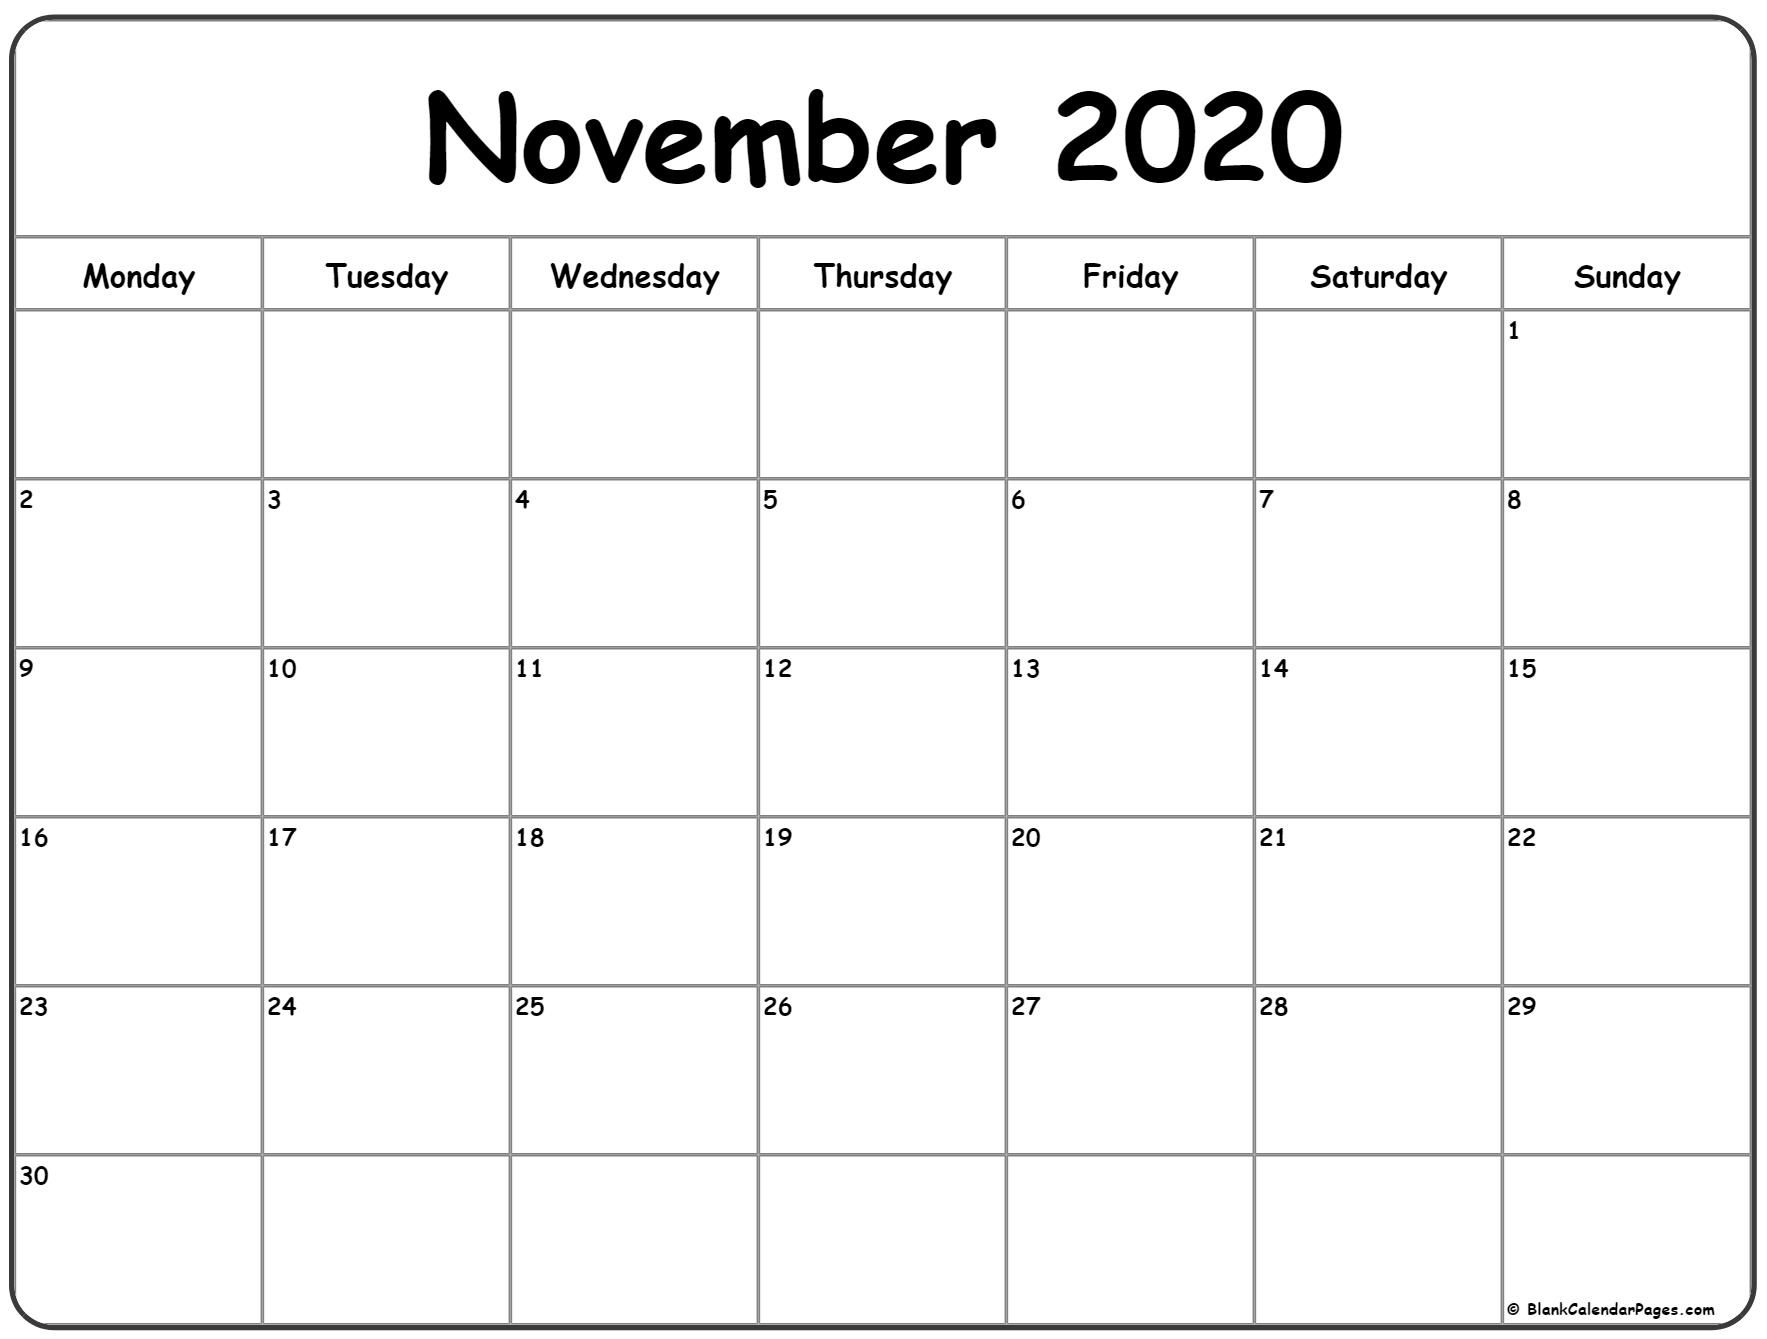 November 2020 Monday Calendar | Monday To Sunday In 2020